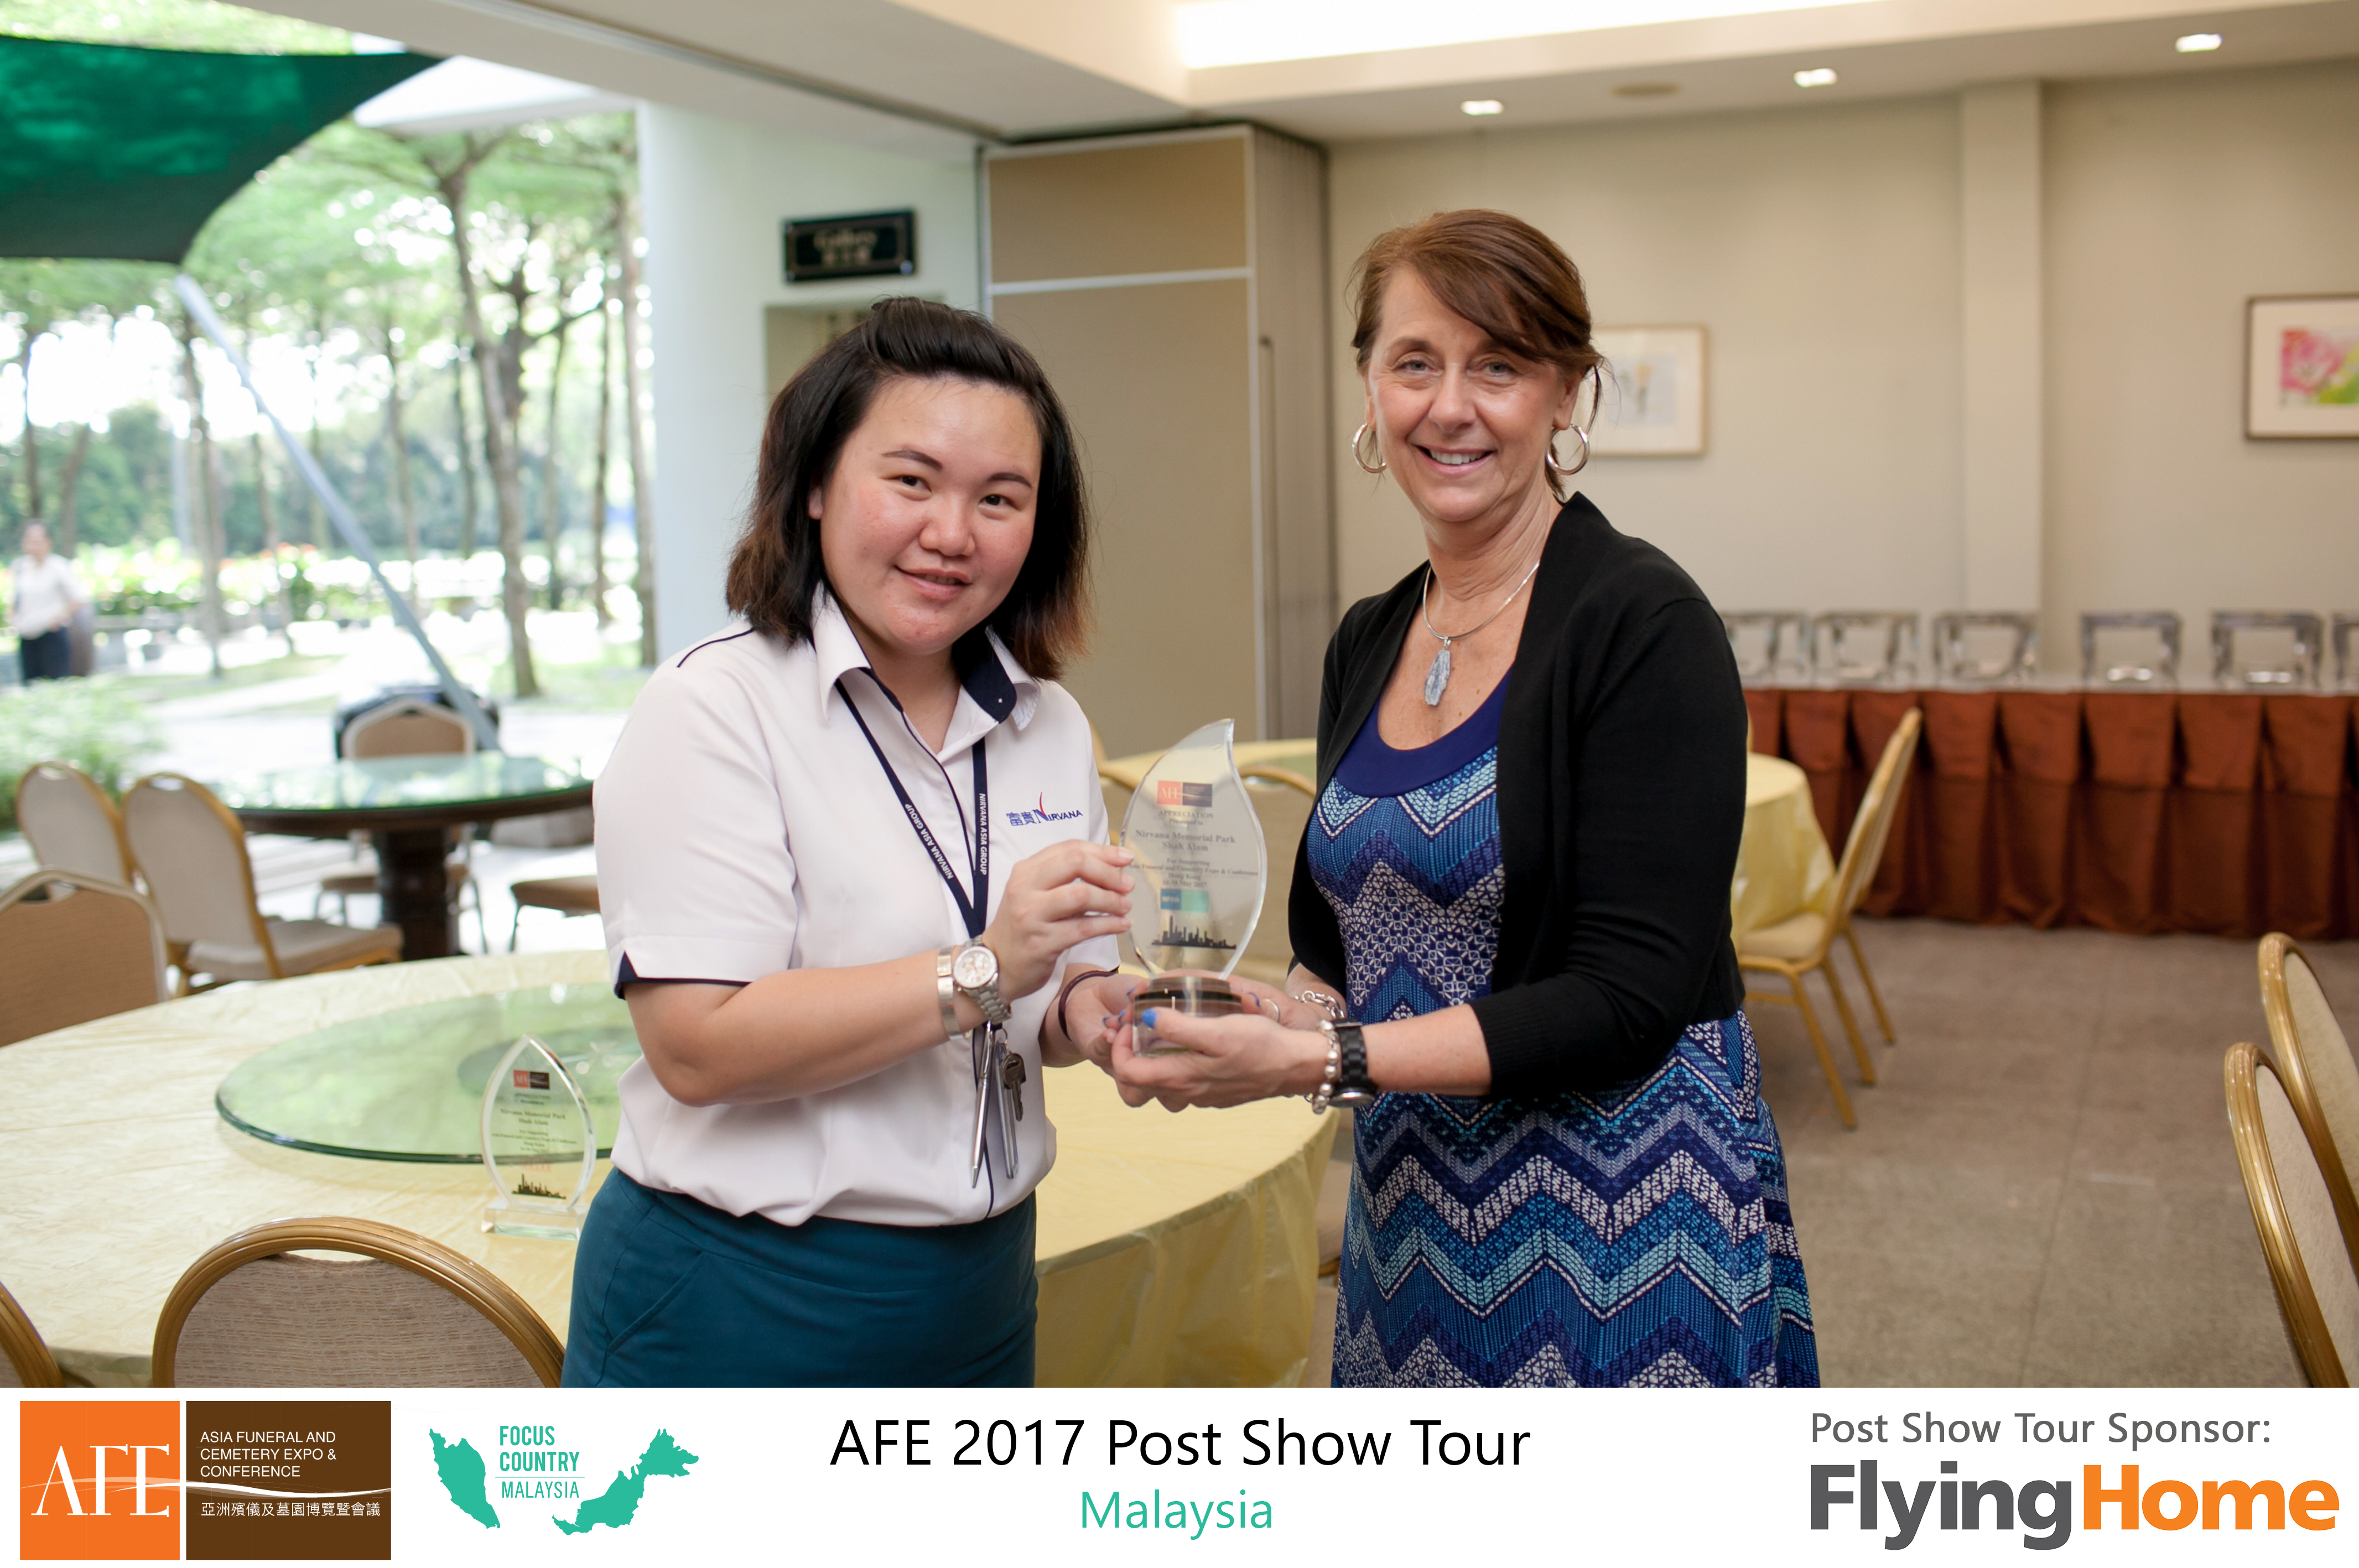 AFE Post Show Tour 2017 Day 2 - 82